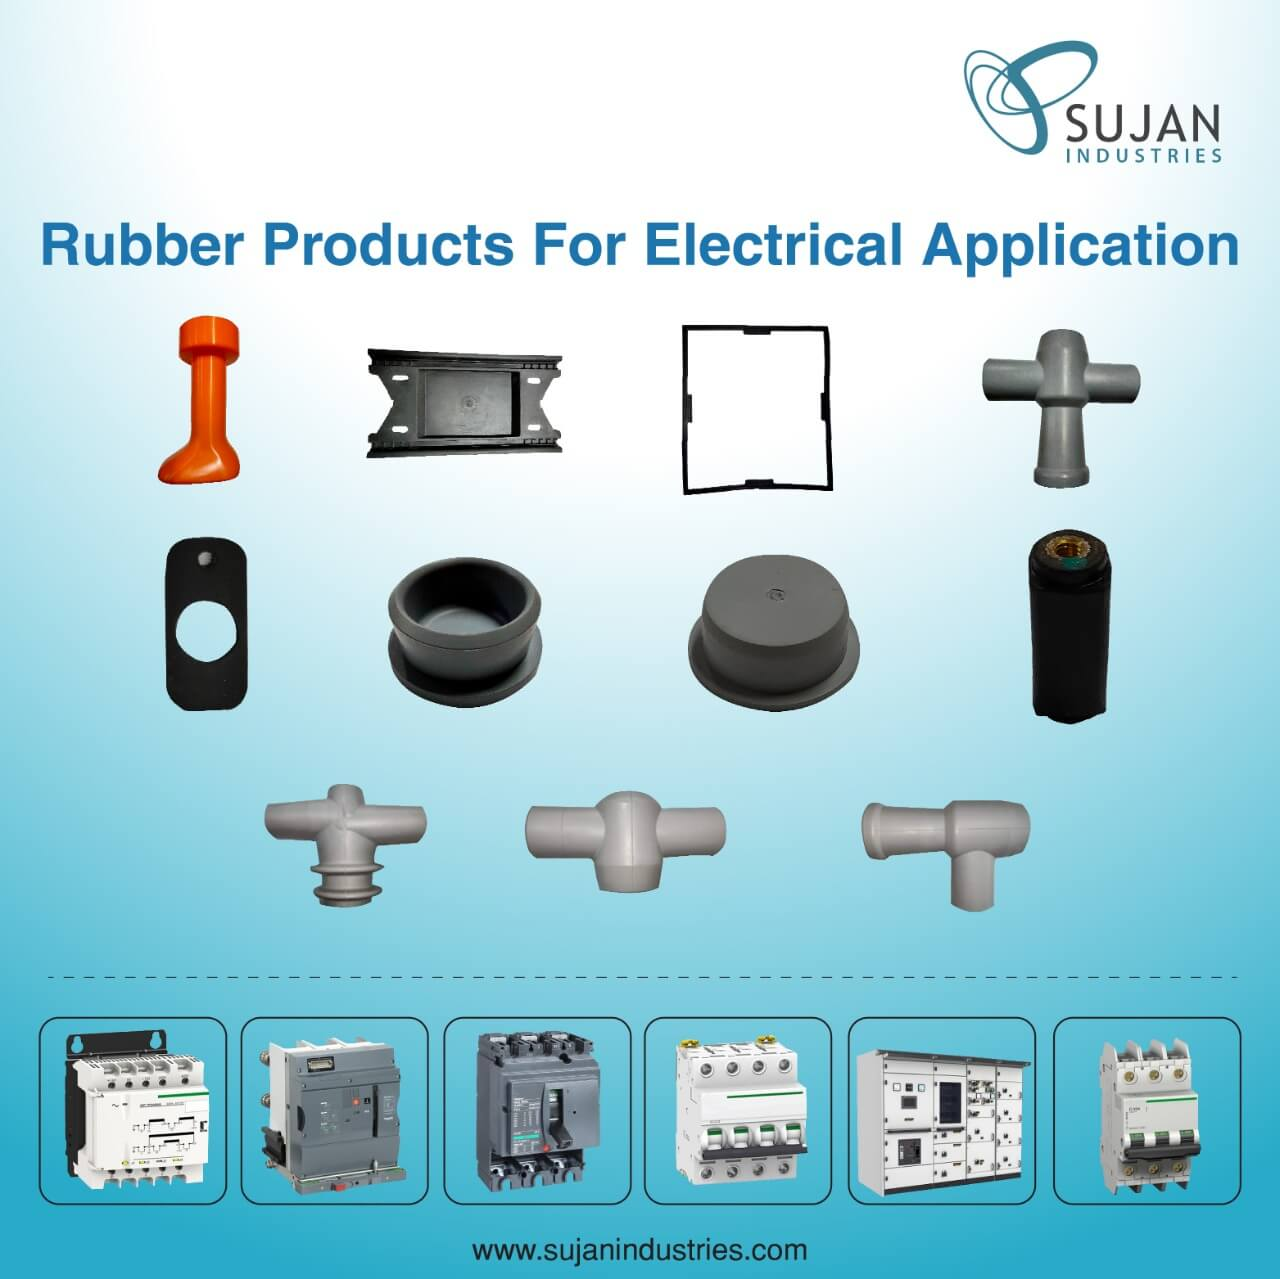 ruuber products in electrical industry